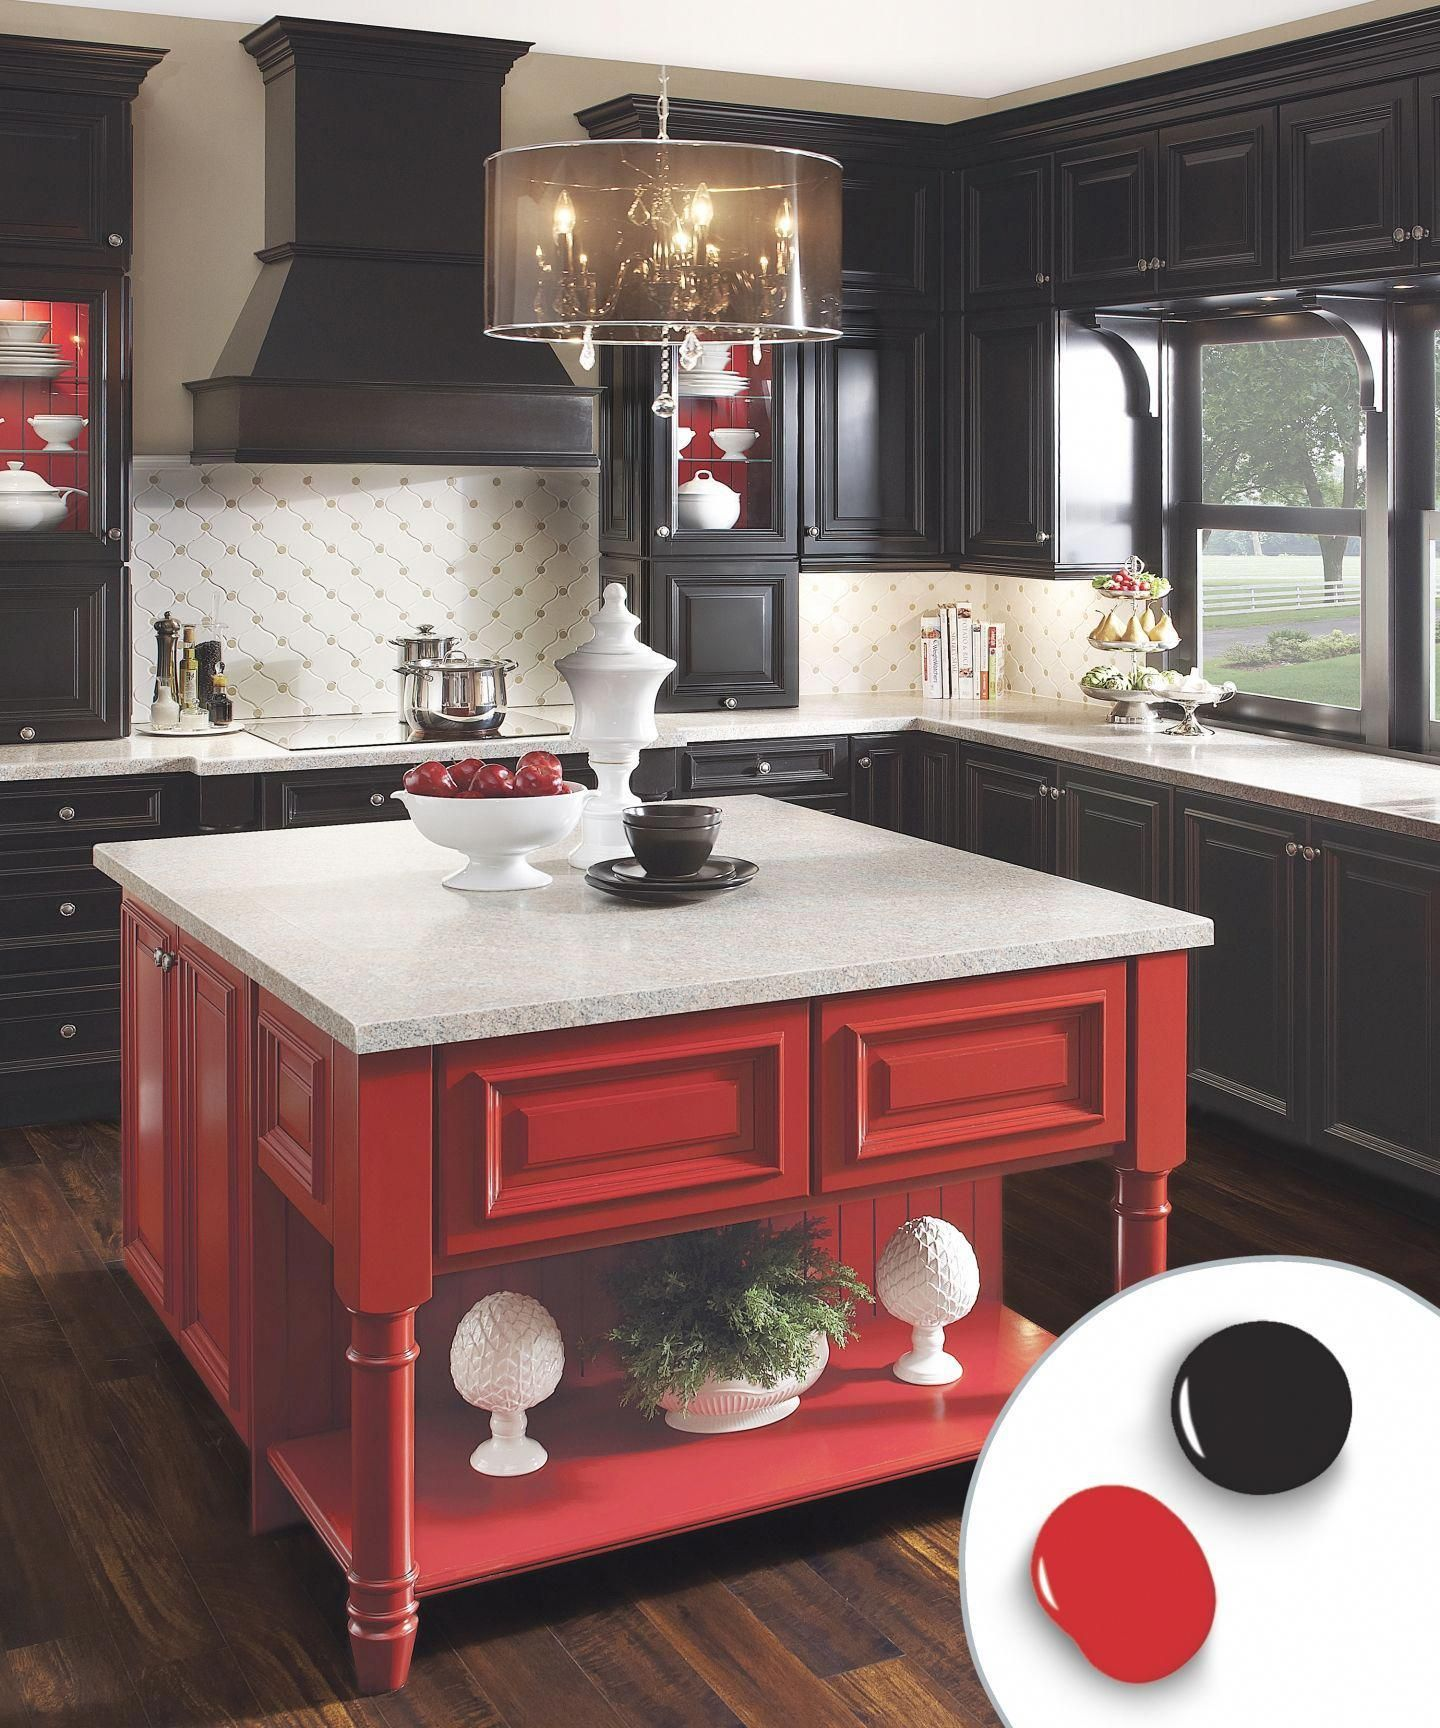 12 Kitchen Cabinet Color Combos That Really Cook In 2020 Kitchen Cabinets Color Combination New Kitchen Cabinets Kitchen Cabinet Colors